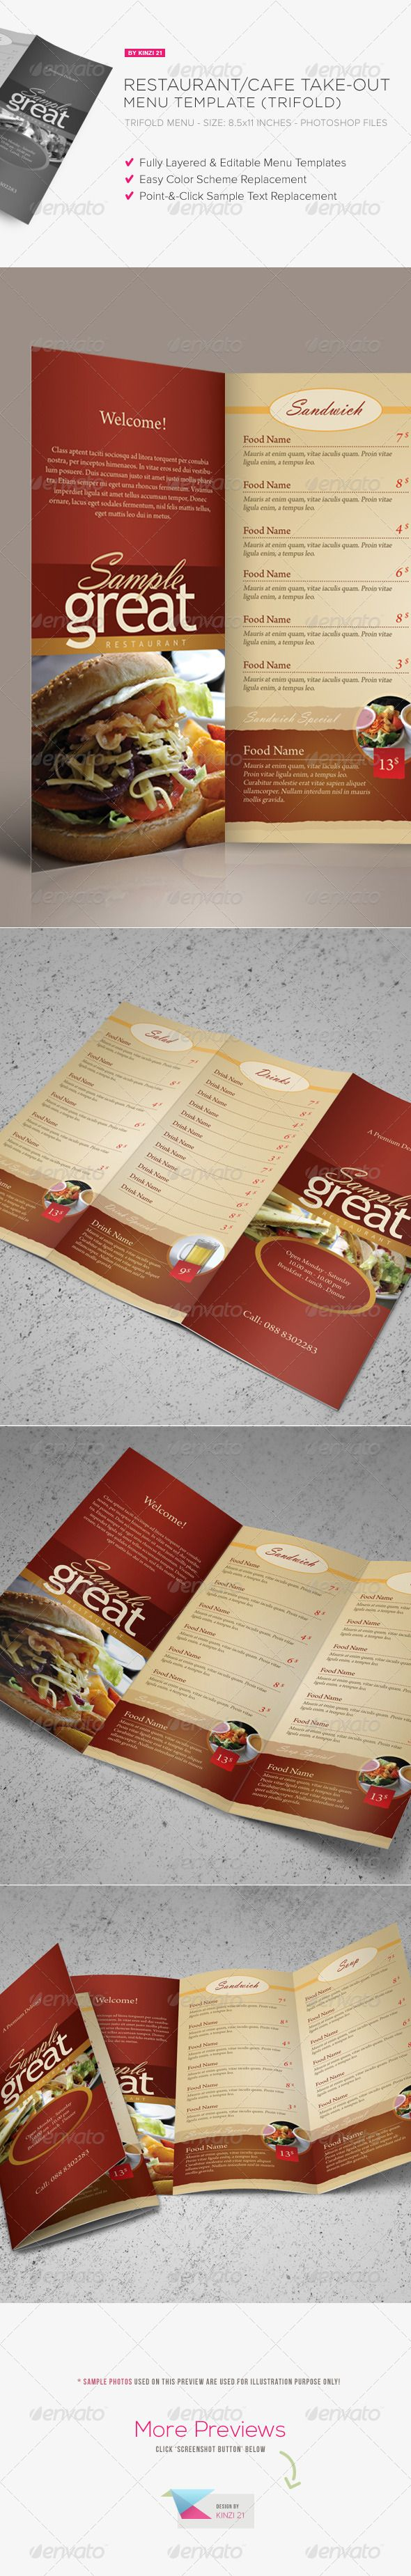 Restaurant Cafe Takeout Menu Template The template pack contains